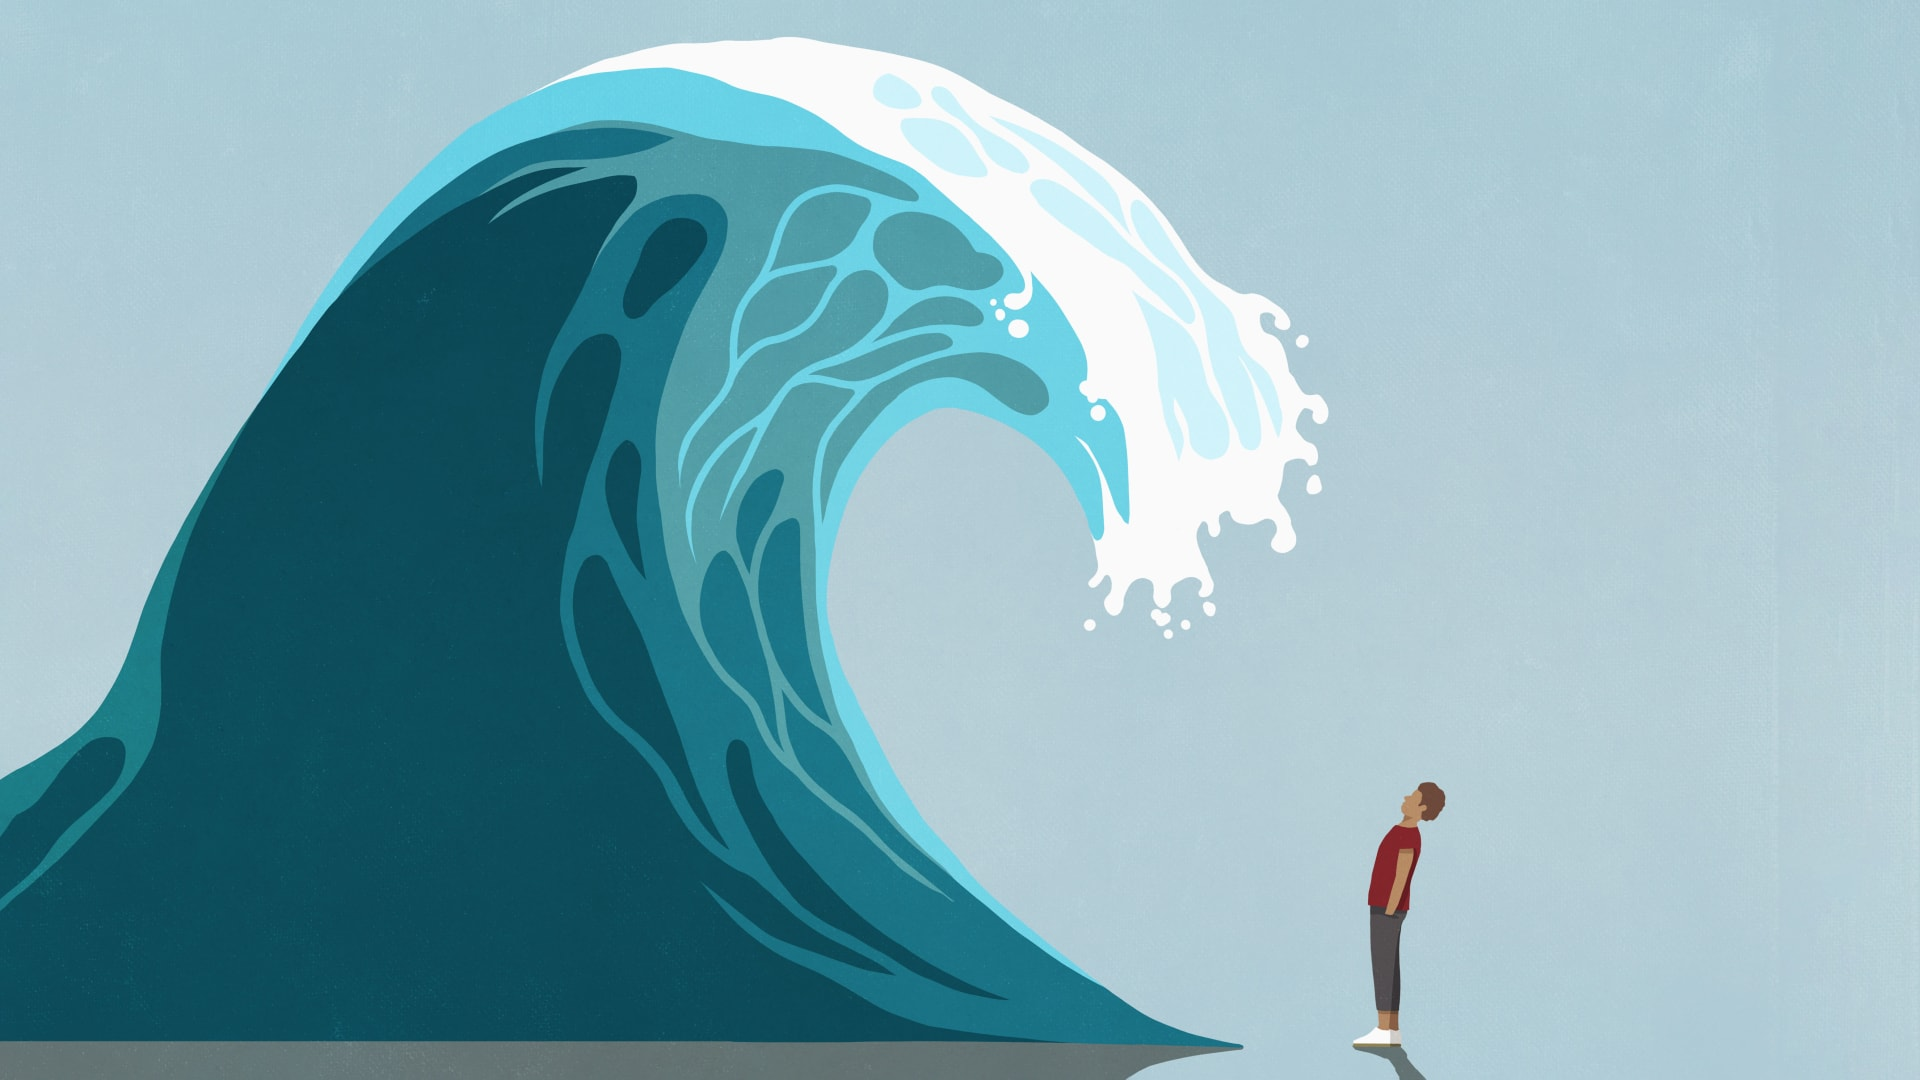 5 Things You Should Think About During a Business Crisis